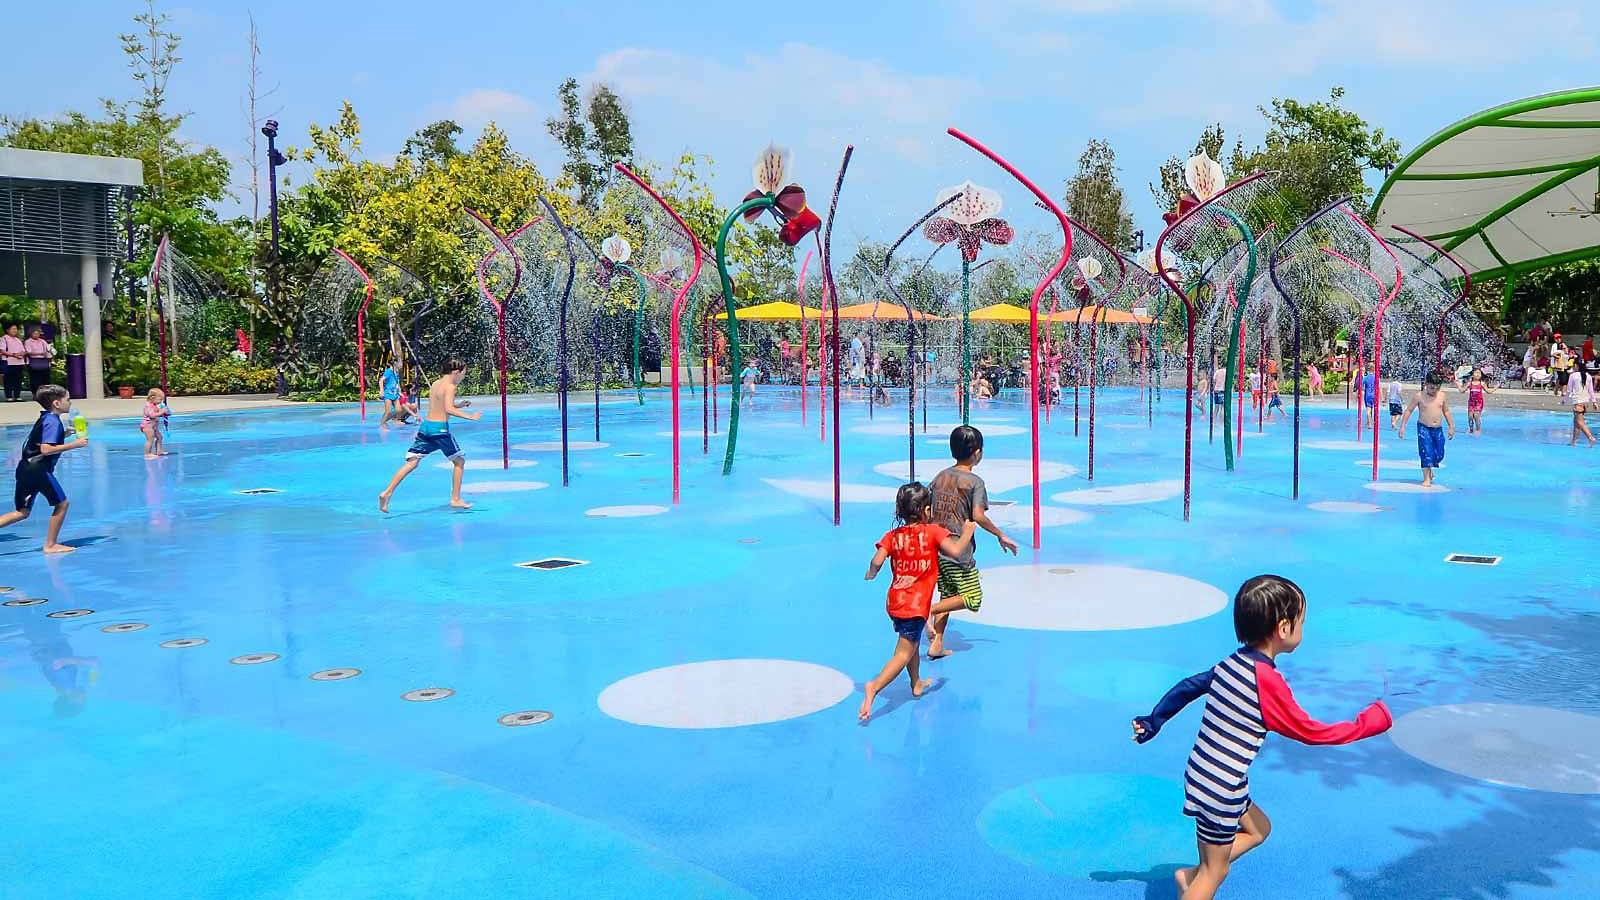 Tots-5-fab-and-free-playgrounds-junior-will-love-GARDENS-BY-THE-BAY